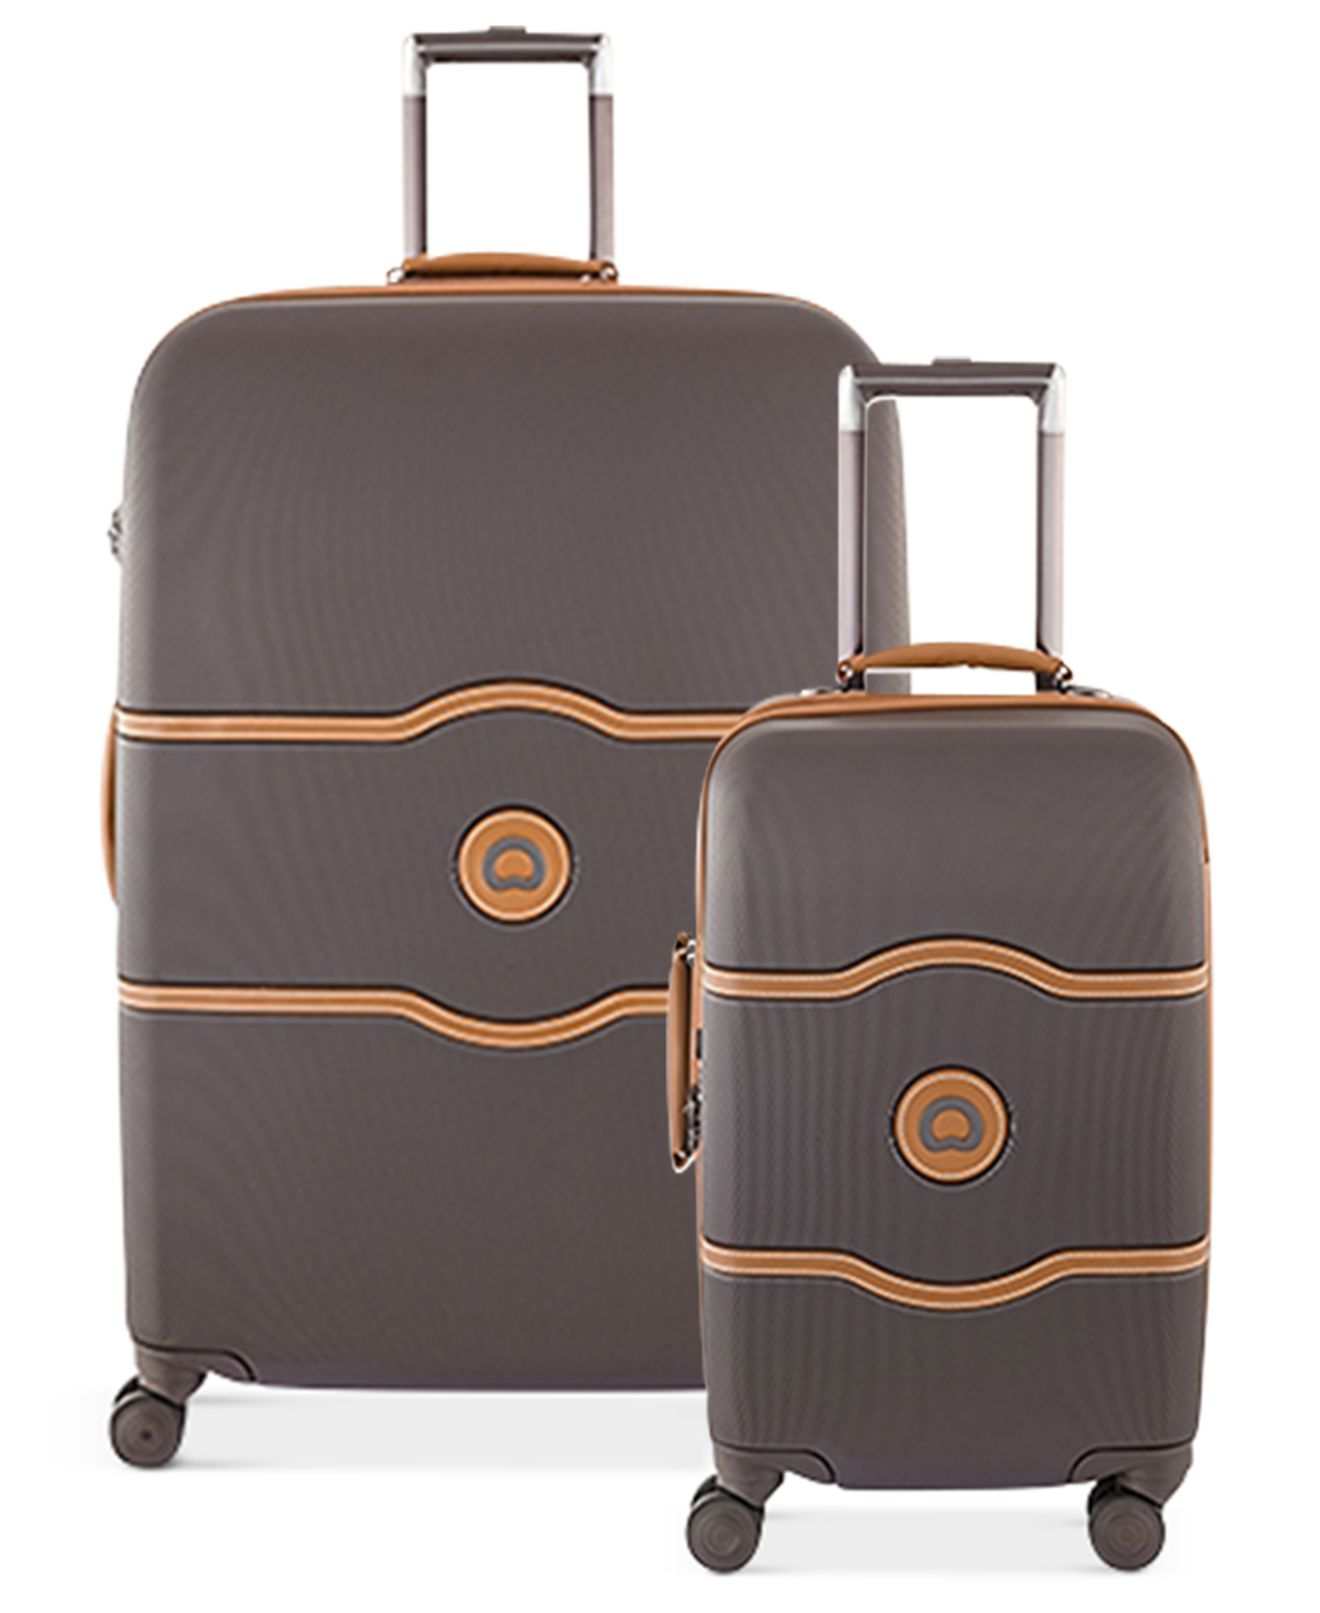 Delsey Luggage Sets for Travel - Macy's